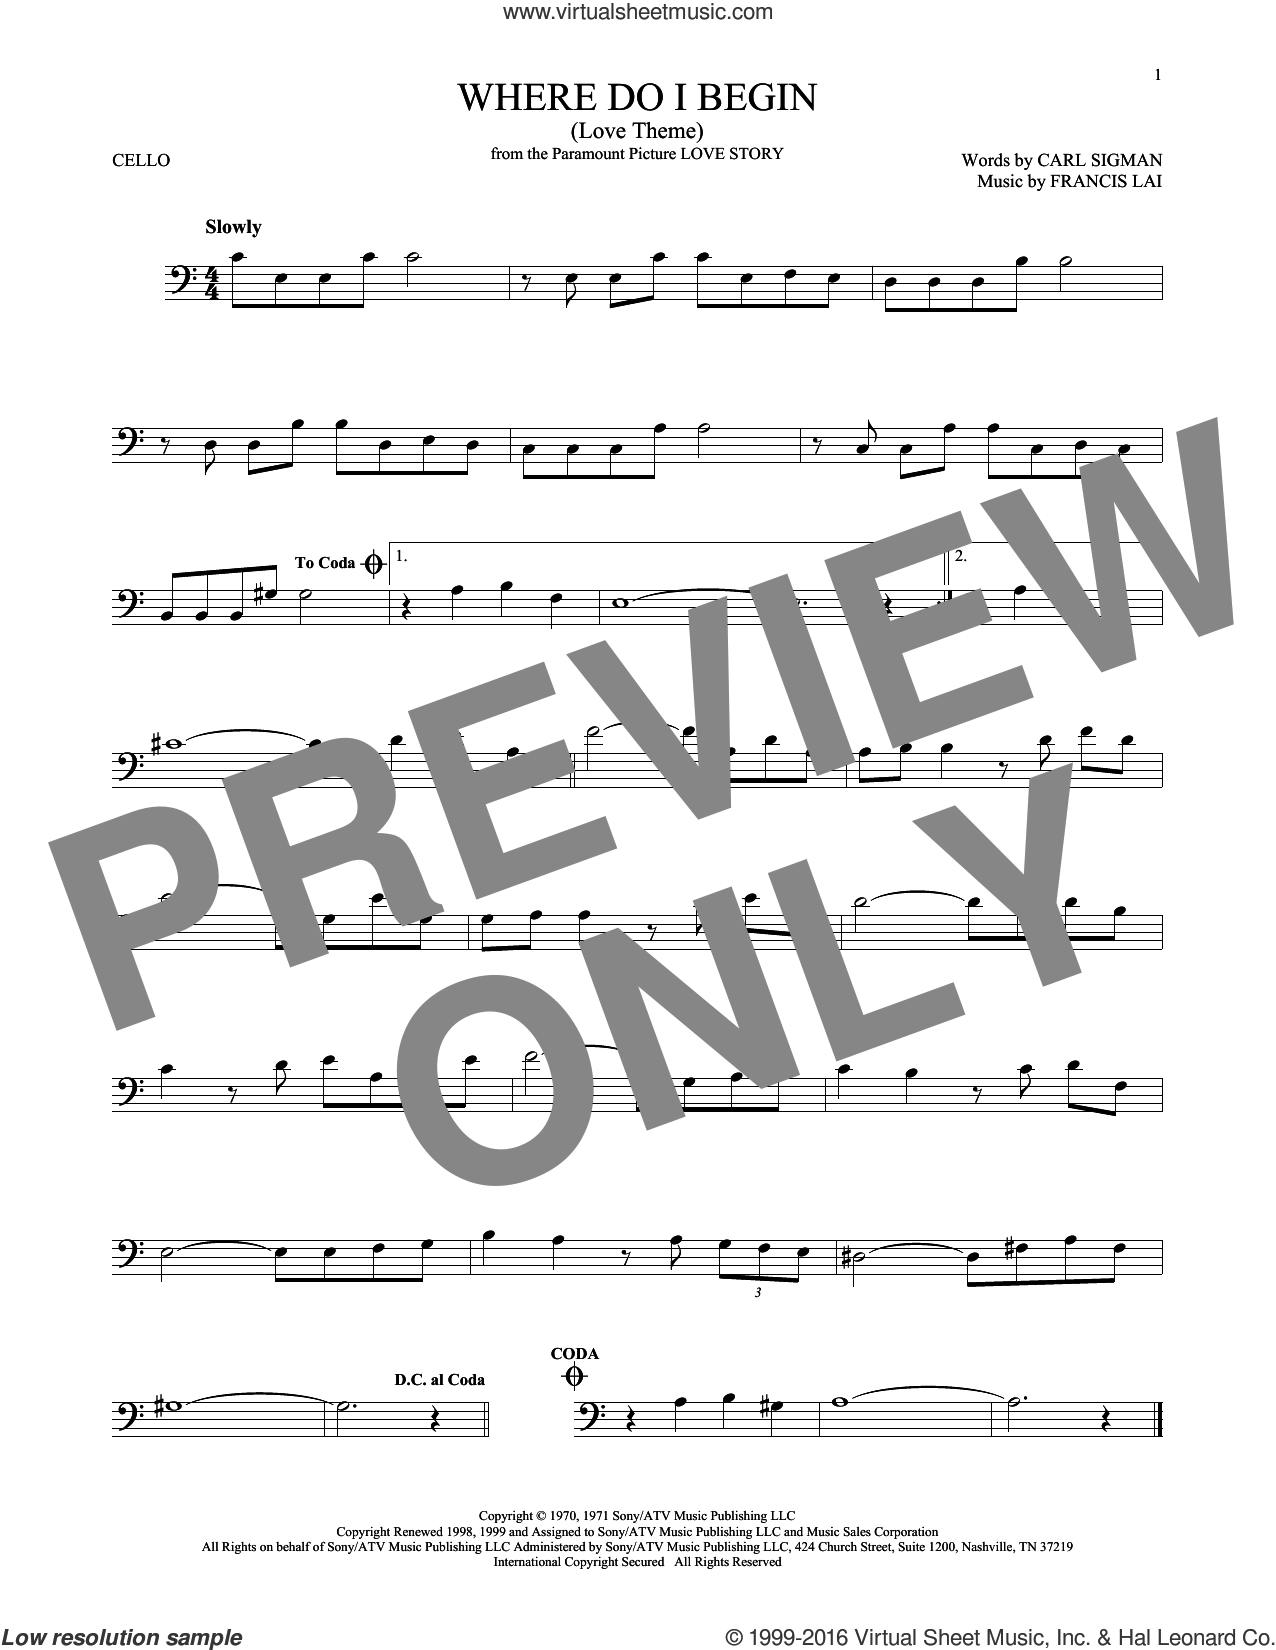 Where Do I Begin (Love Theme) sheet music for cello solo by Andy Williams, Carl Sigman and Francis Lai, intermediate skill level